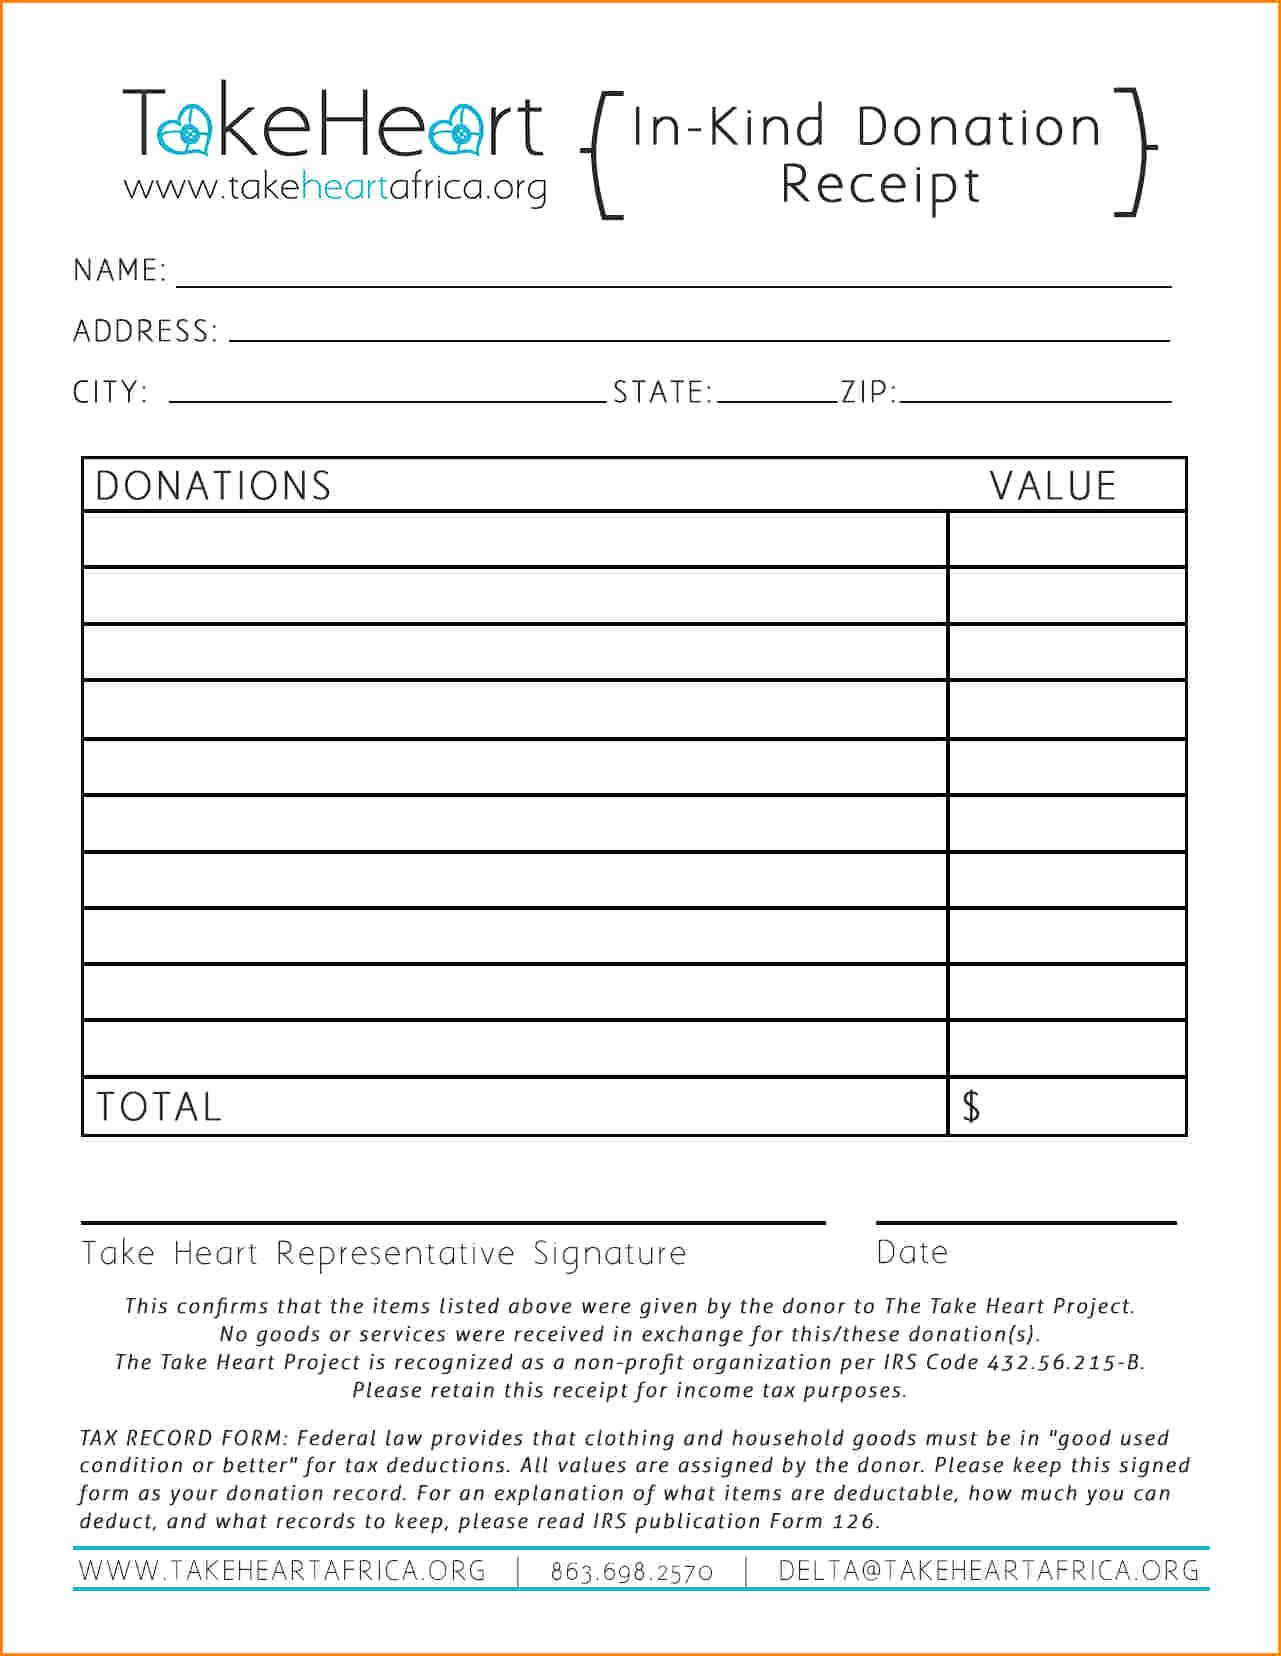 Tax Deductible Donation Receipt Template Awesome 7 Receipt for Tax Deductible Donation